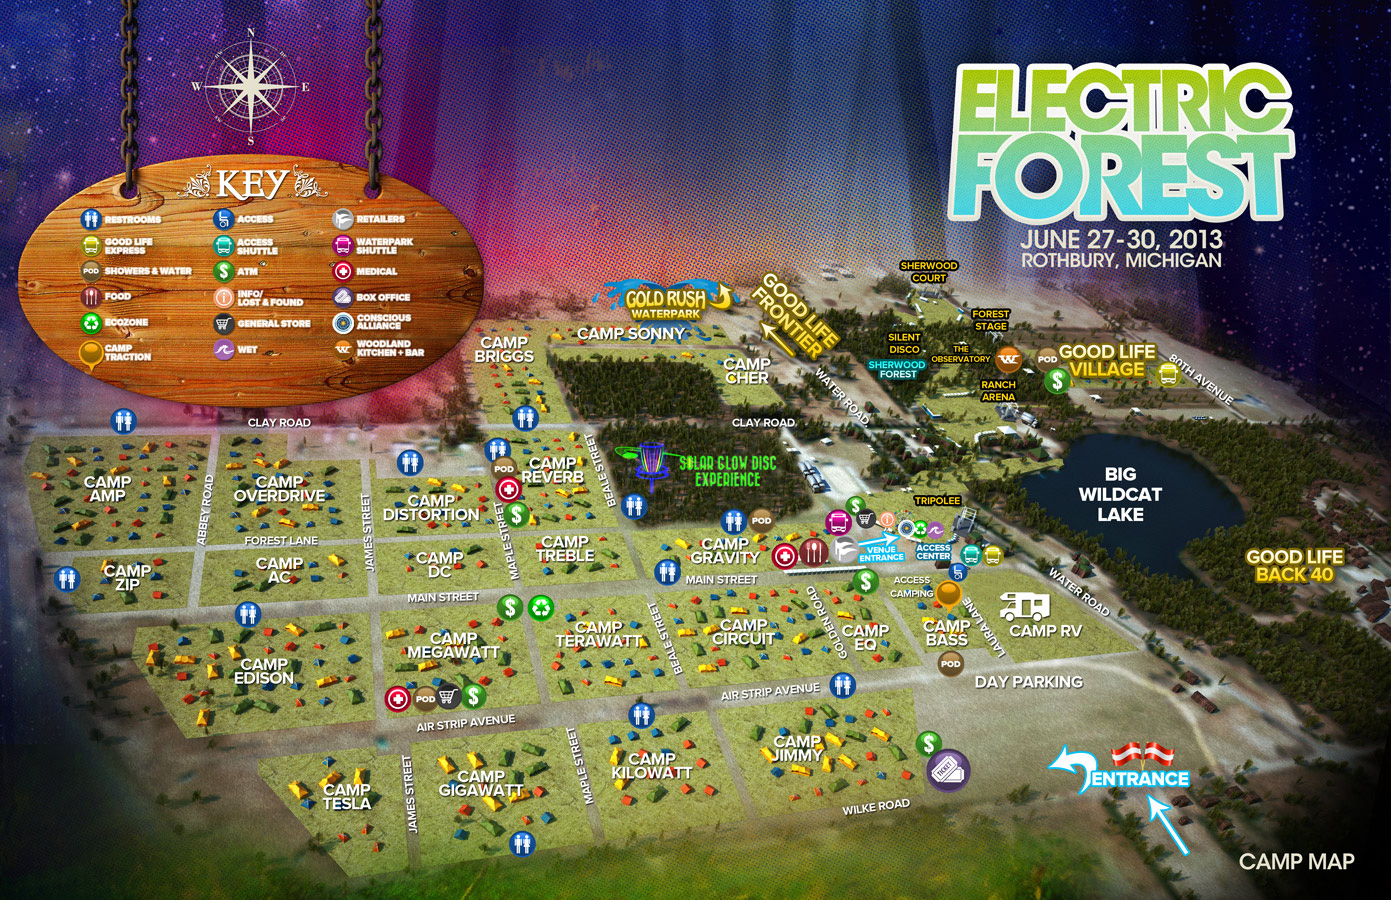 Electric Forest Map Electric Forest Camp Map ⋆ BYT // Brightest Young Things